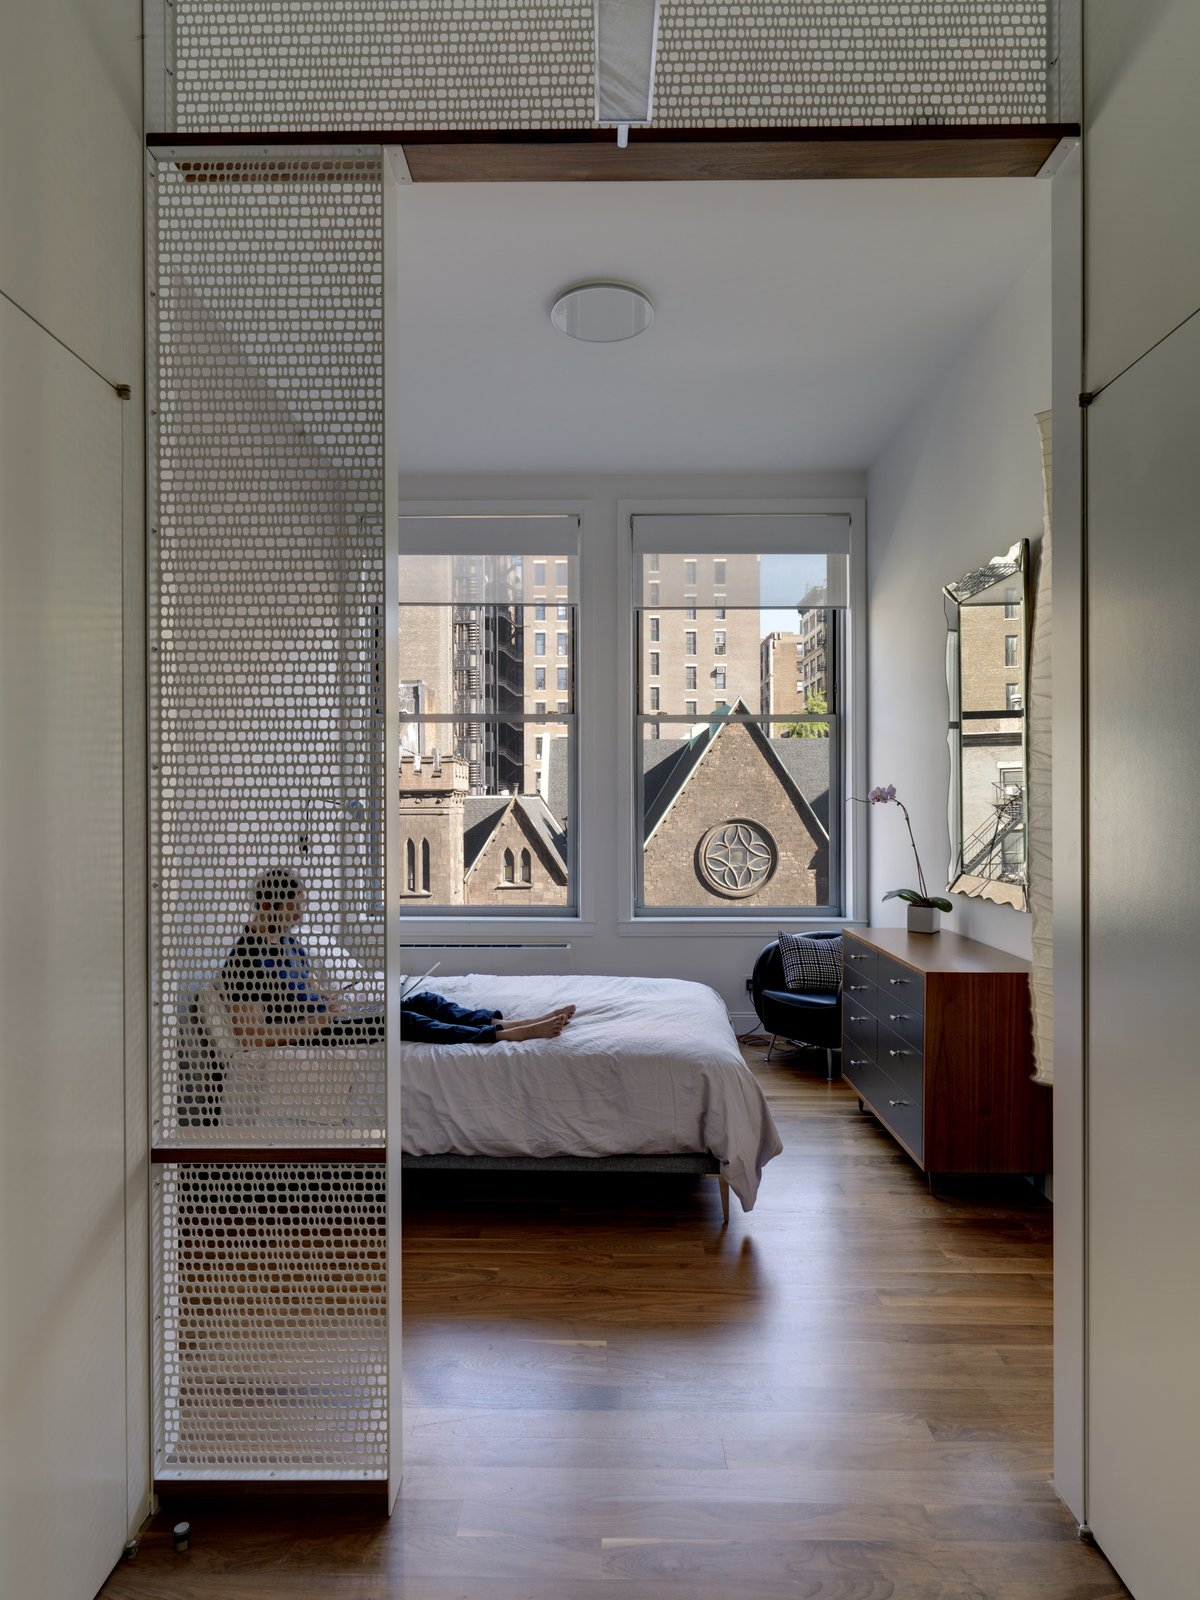 The screens and shelving from the kitchen area repeat in the master bedroom, filtering light to the closet area, through which the master bedroom is accessed. The dresser was designed by BSC.  Bedrooms by Dwell from Luminous Apartment in a Historic NYC Building